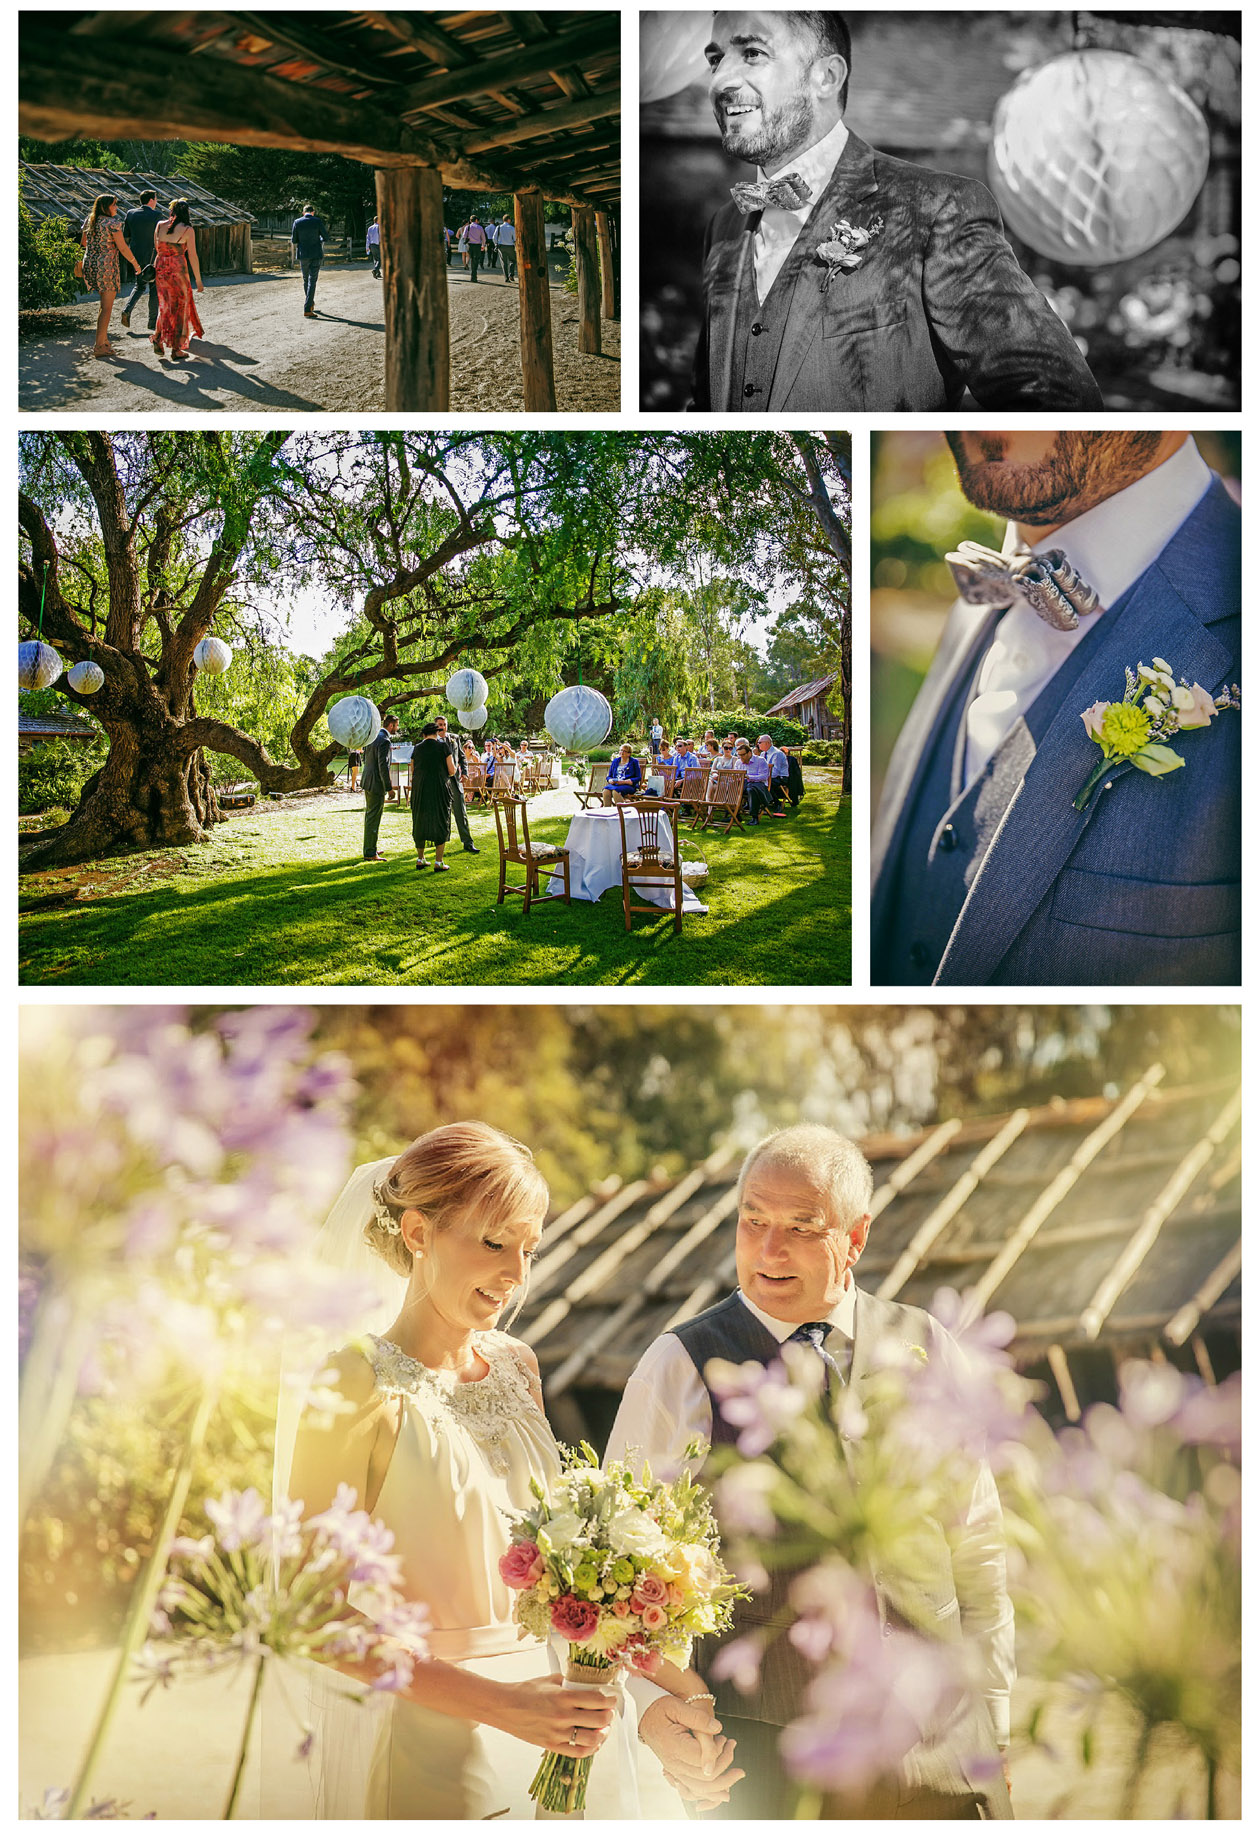 The groom and his guests wait for the beautiful bride to enter the wedding ceremony at Emu Bottom Homestead